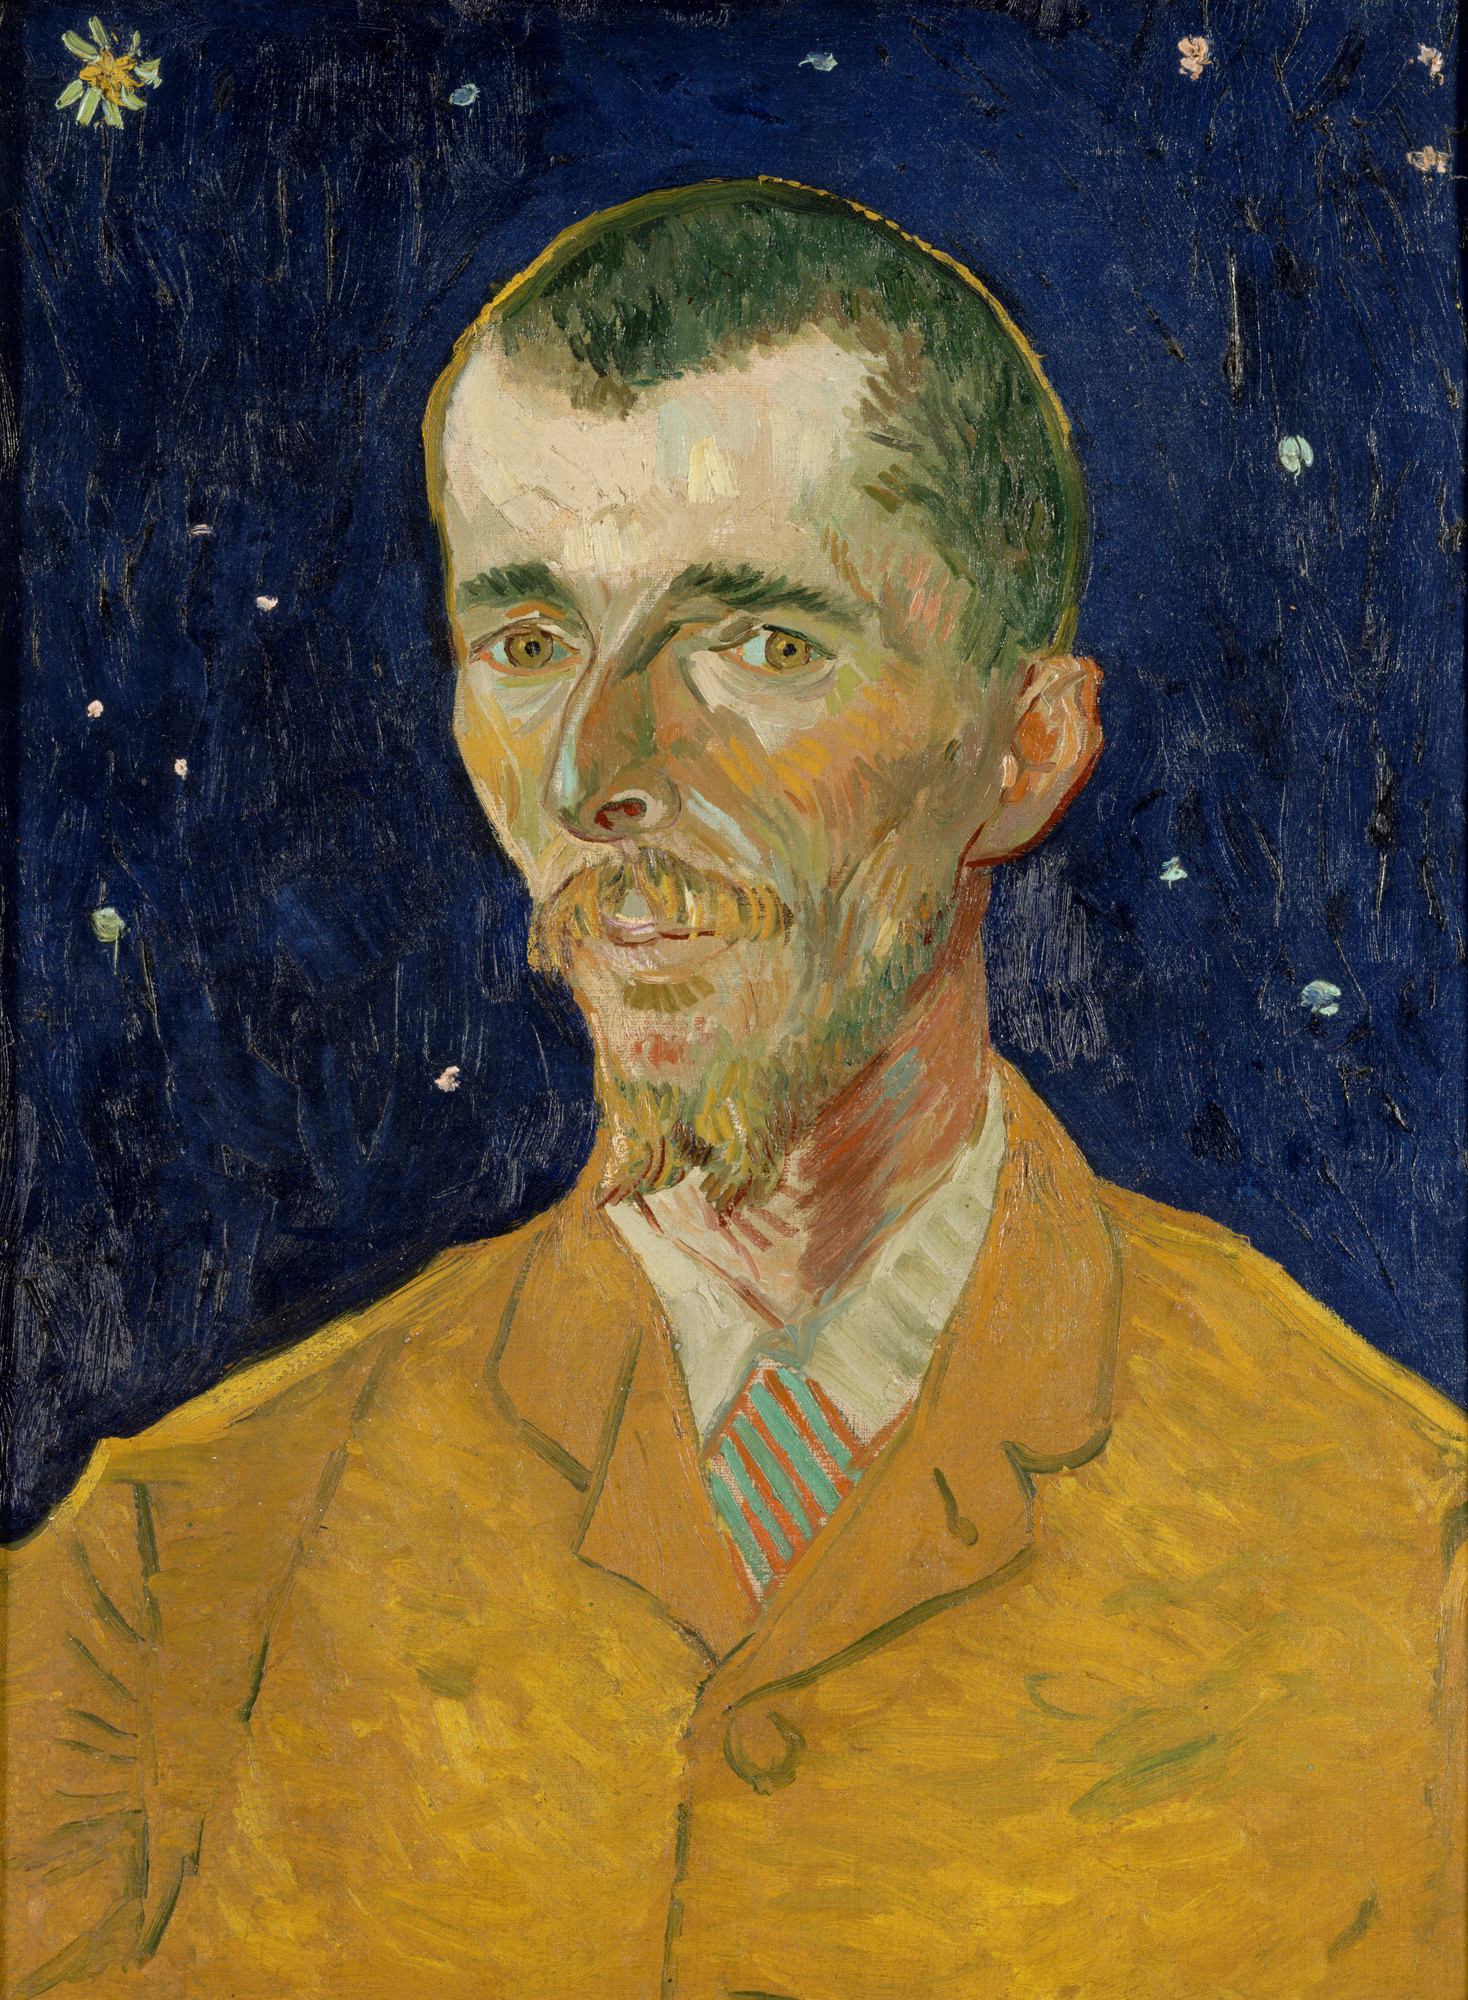 Vincent van Gogh. Eugène Boch (The Poet). 1888. Oil on canvas. 23 5⁄8 × 17 11/16″ (60 × 45 cm). Musée d'Orsay, Paris. Bequest of Eugène Boch through the Société des Amis du Louvre, 1941. © Réunion des Musées Nationaux/Art Resource, NY. Photo: Hervé Lewandowski